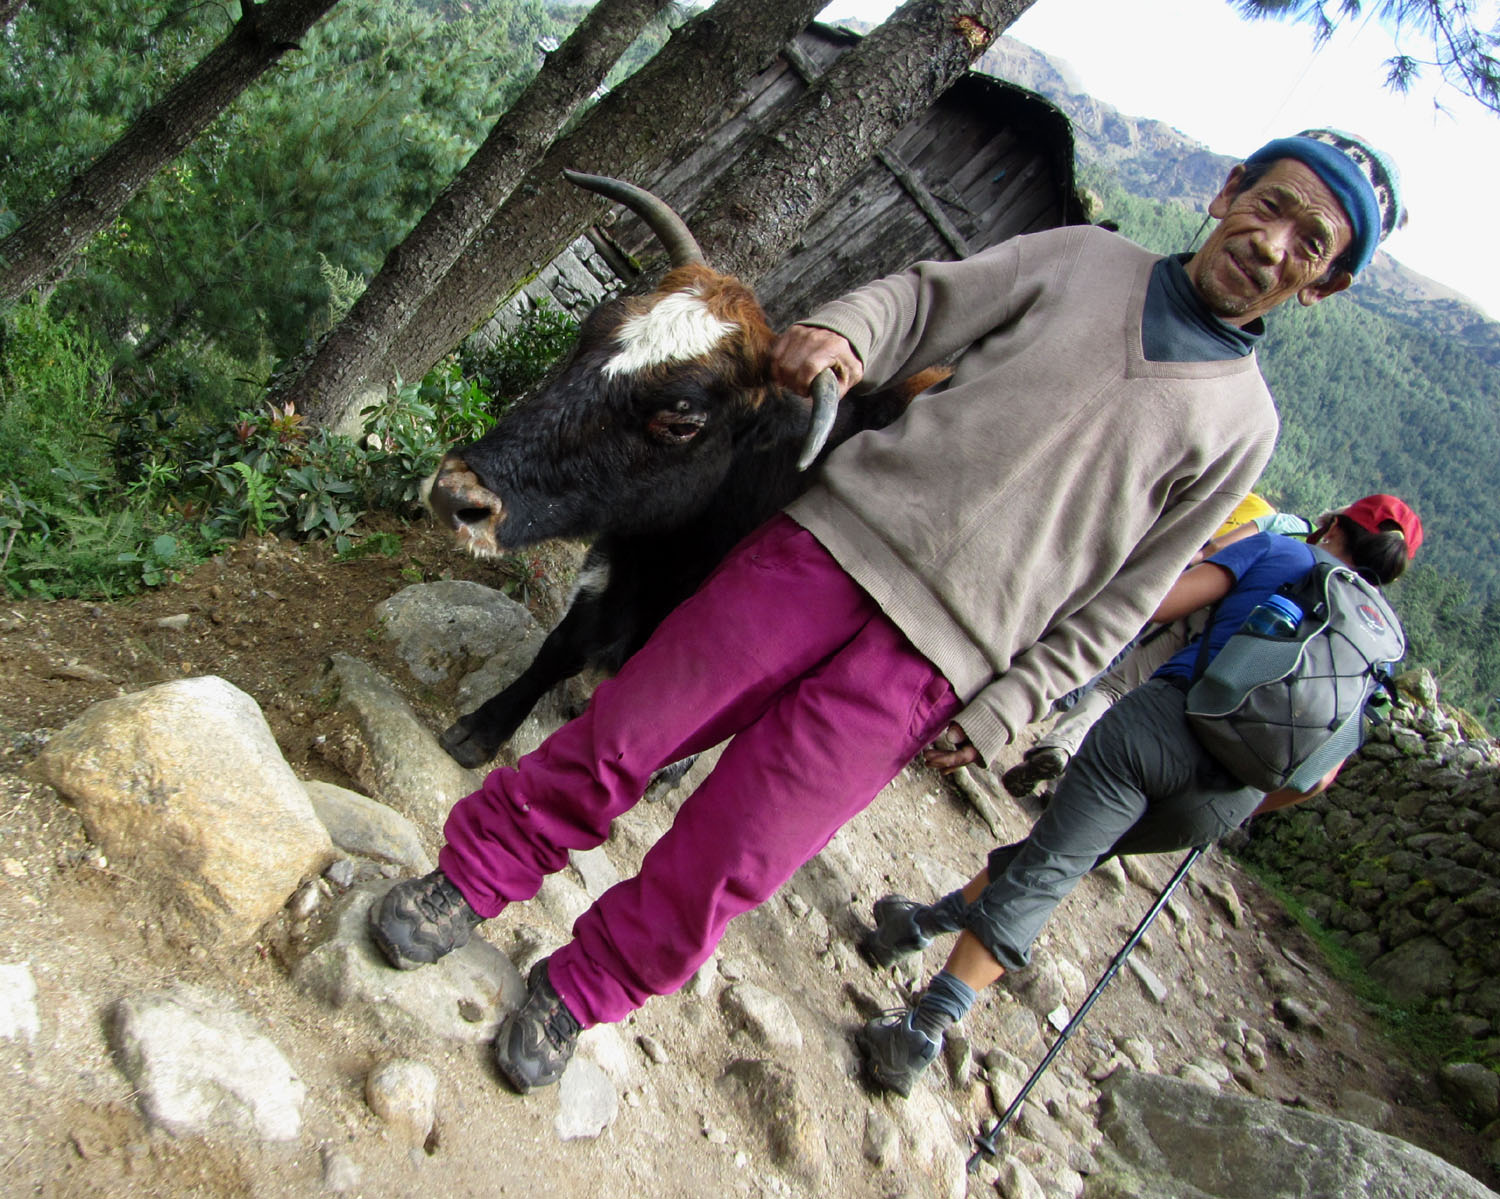 Nepal-Everest-Region-Trek-Day-02-Beasts-Of-Burden